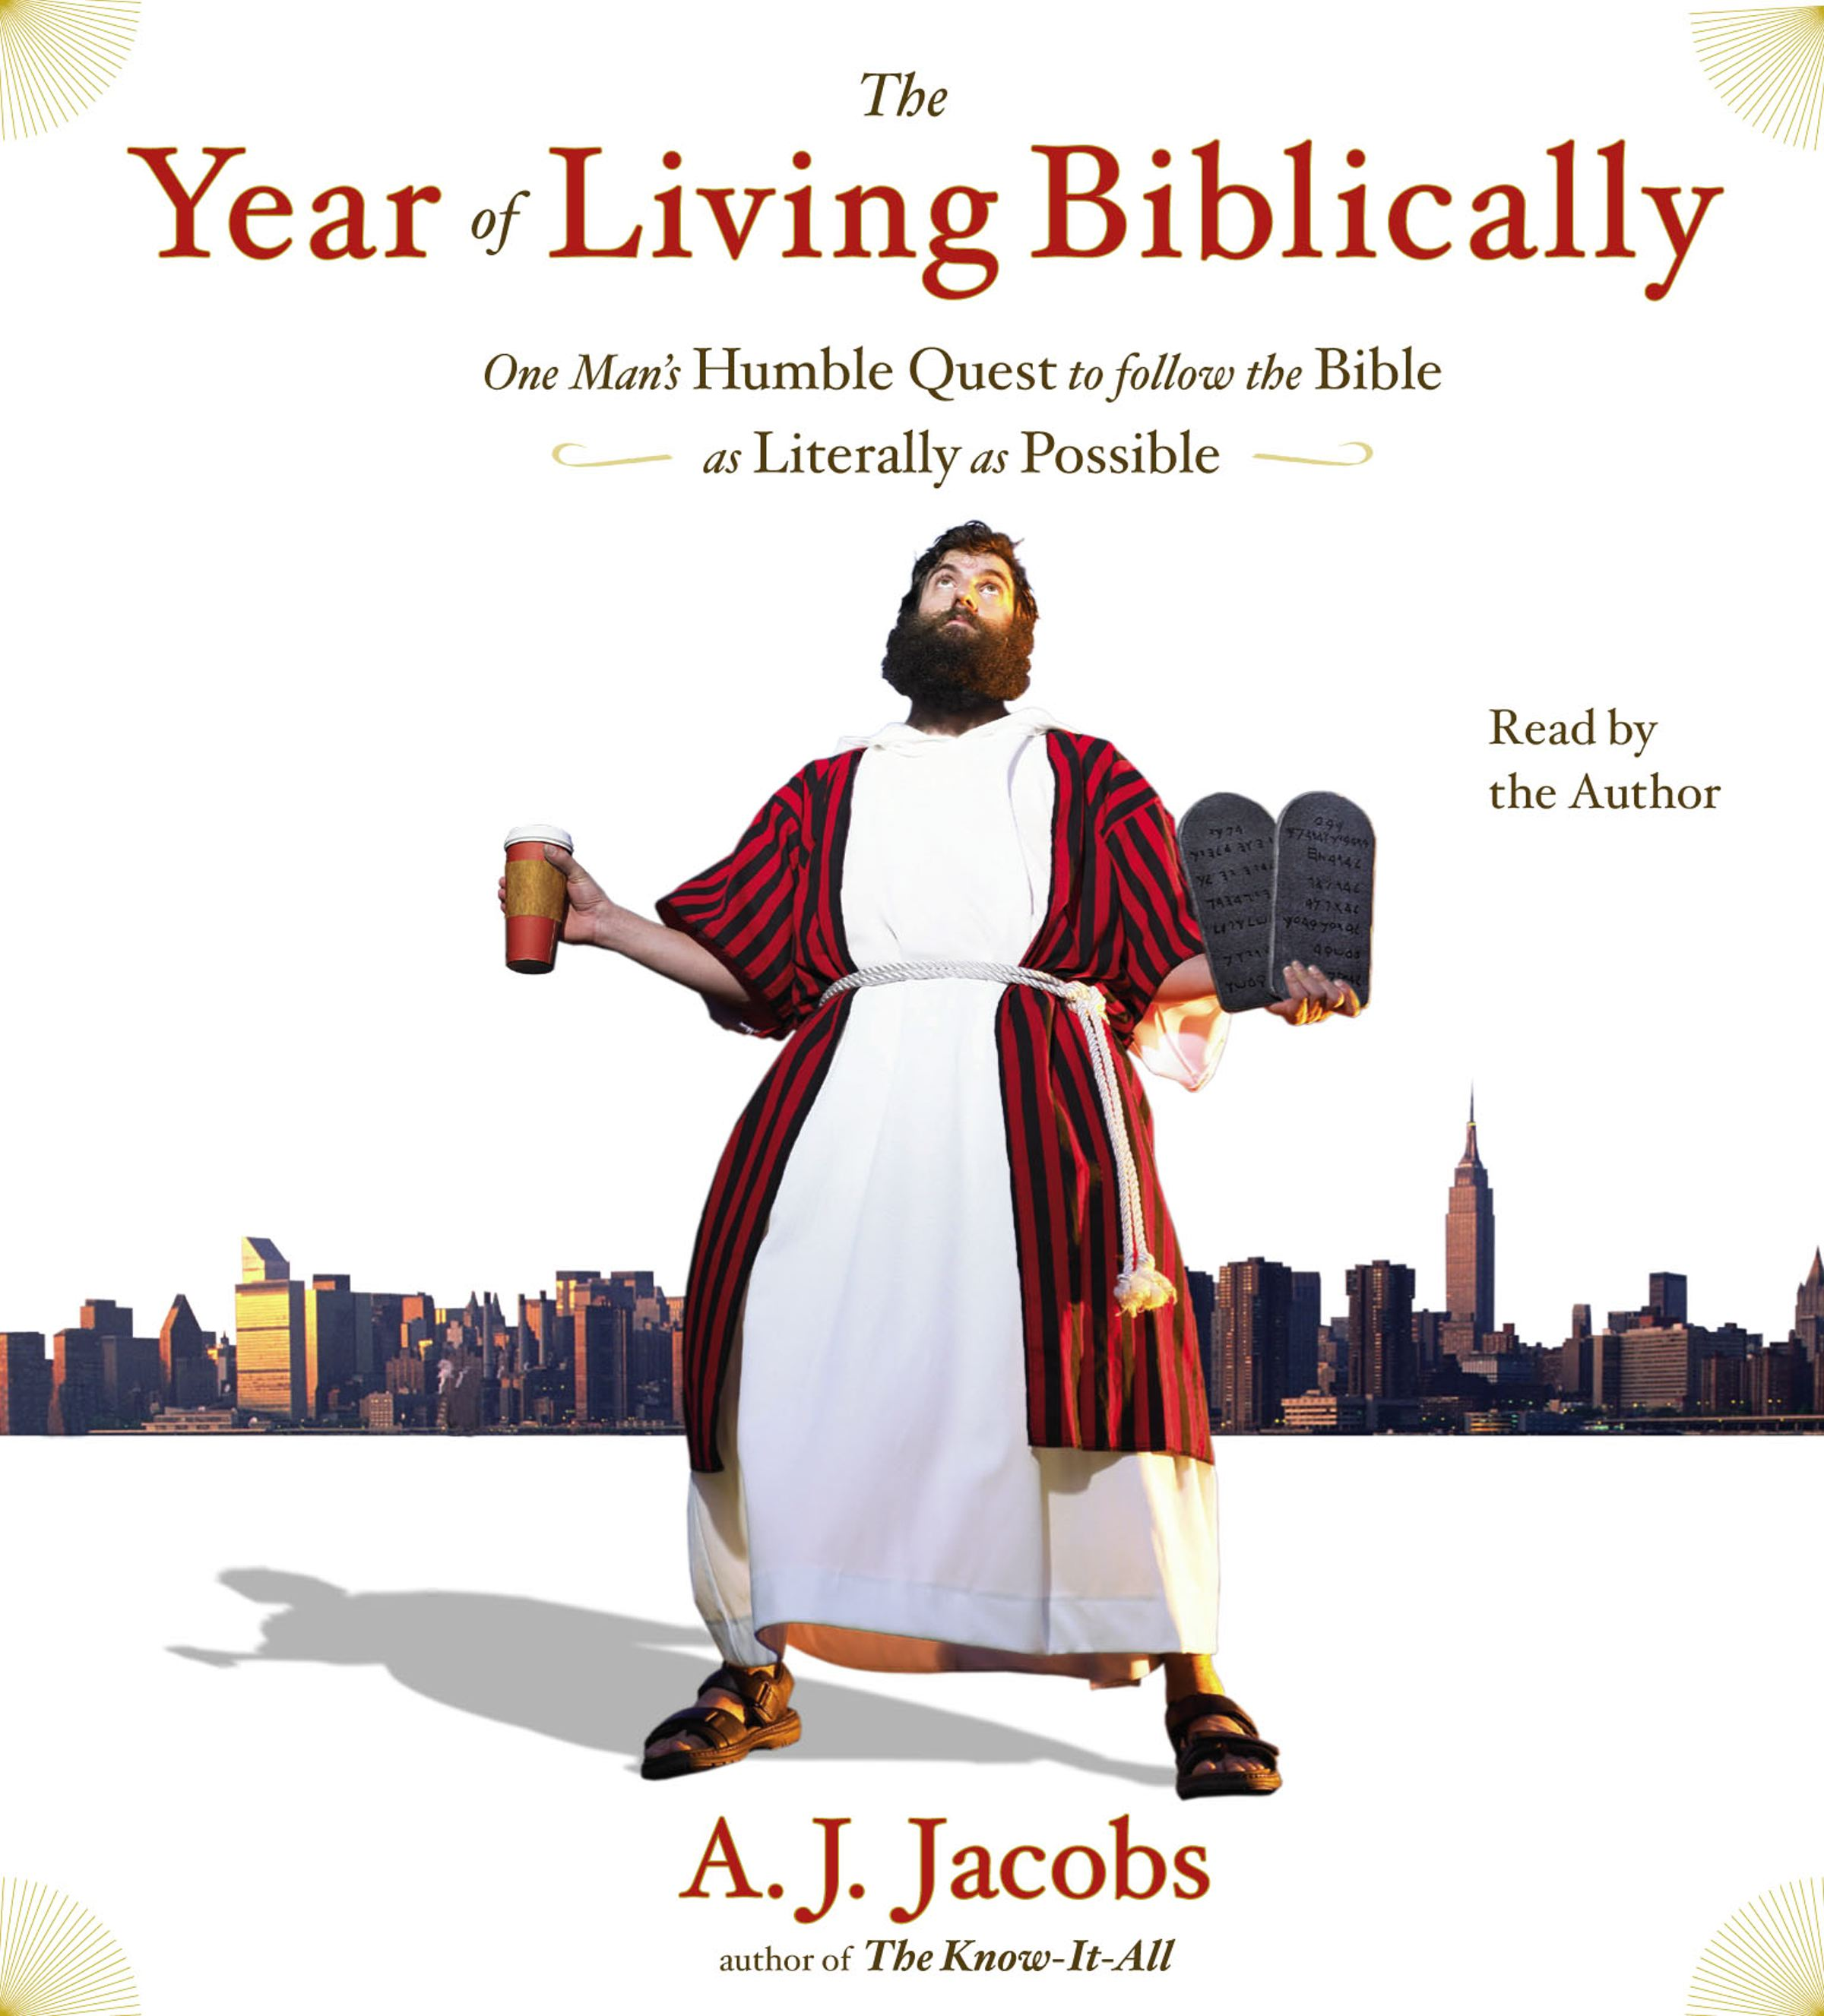 Year-of-living-biblically-9780743569989_hr